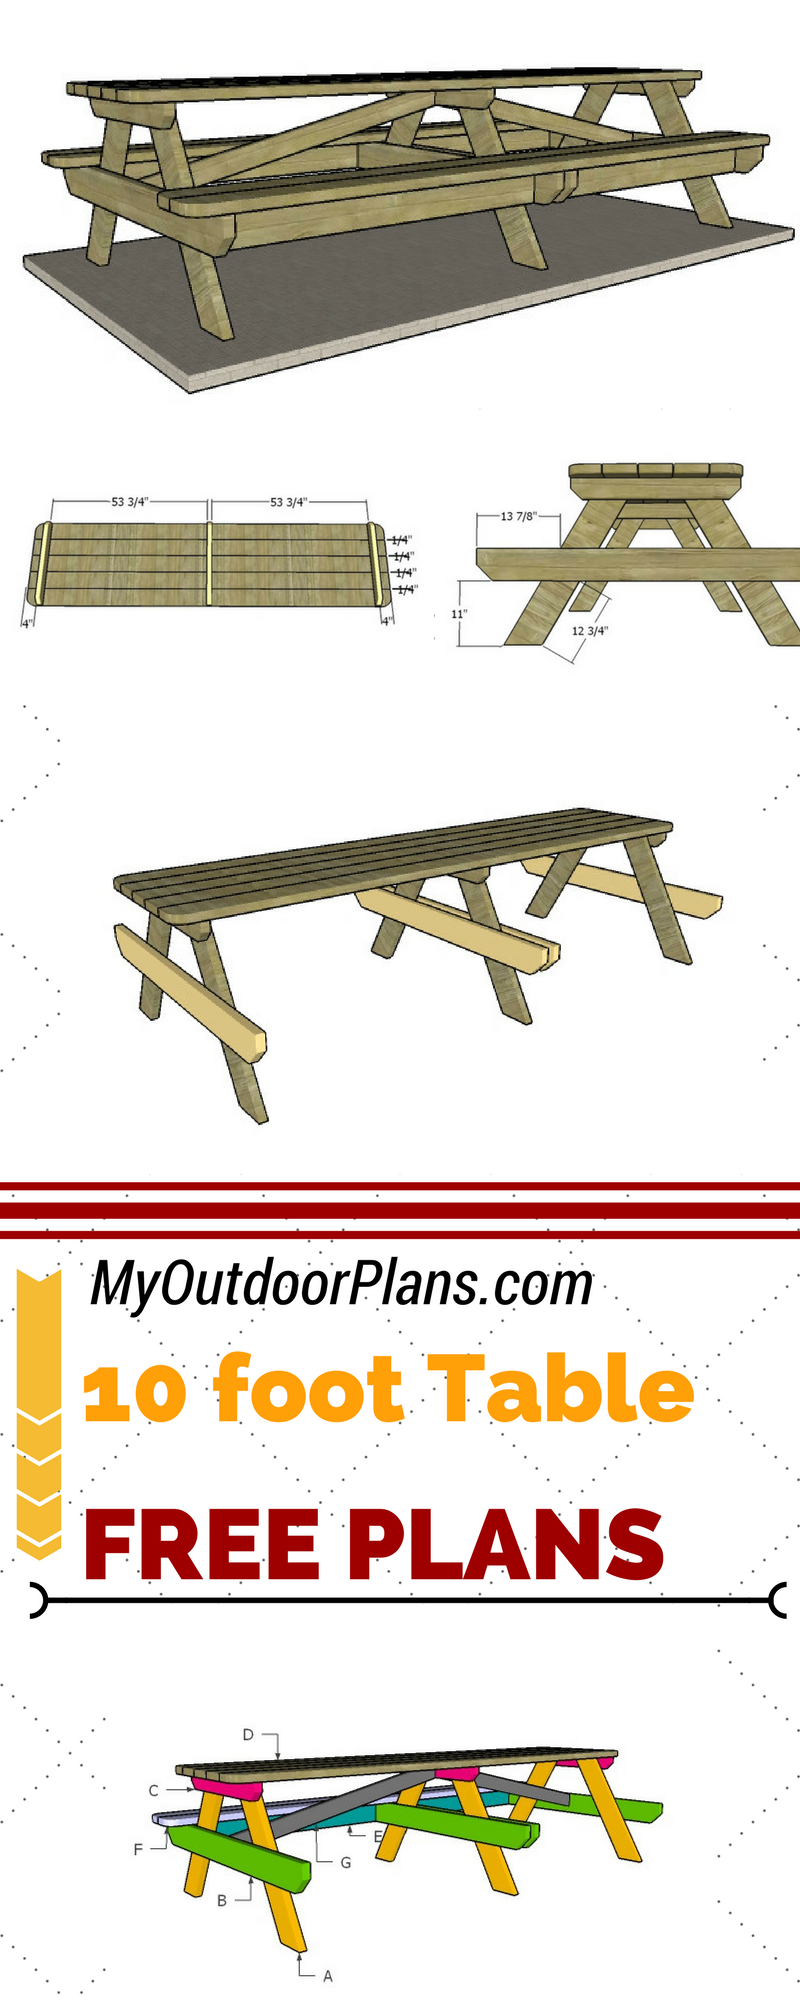 Check Out Free Plans For Building A 10 Foot Picnic Table Step By Step Instructions And Detailed Di Diy Picnic Table Picnic Table Plans Woodworking Plans Free